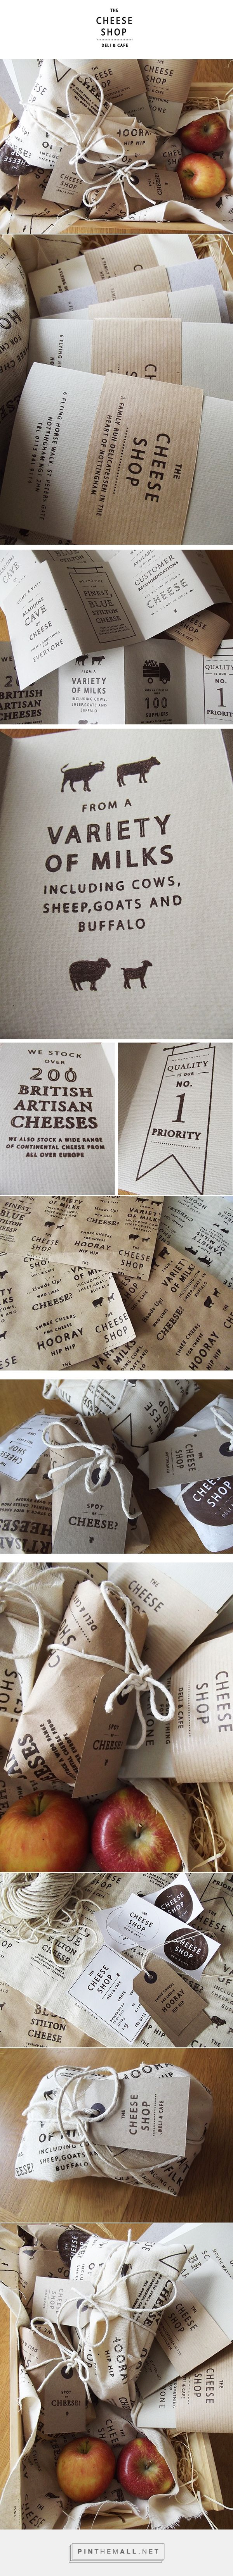 The Cheese Shop on Behance by Charlotte Estelle Littlehales curated by Packaging Diva PD.  Identity packaging rebrand for The Cheese Shop based locally in Nottingham.